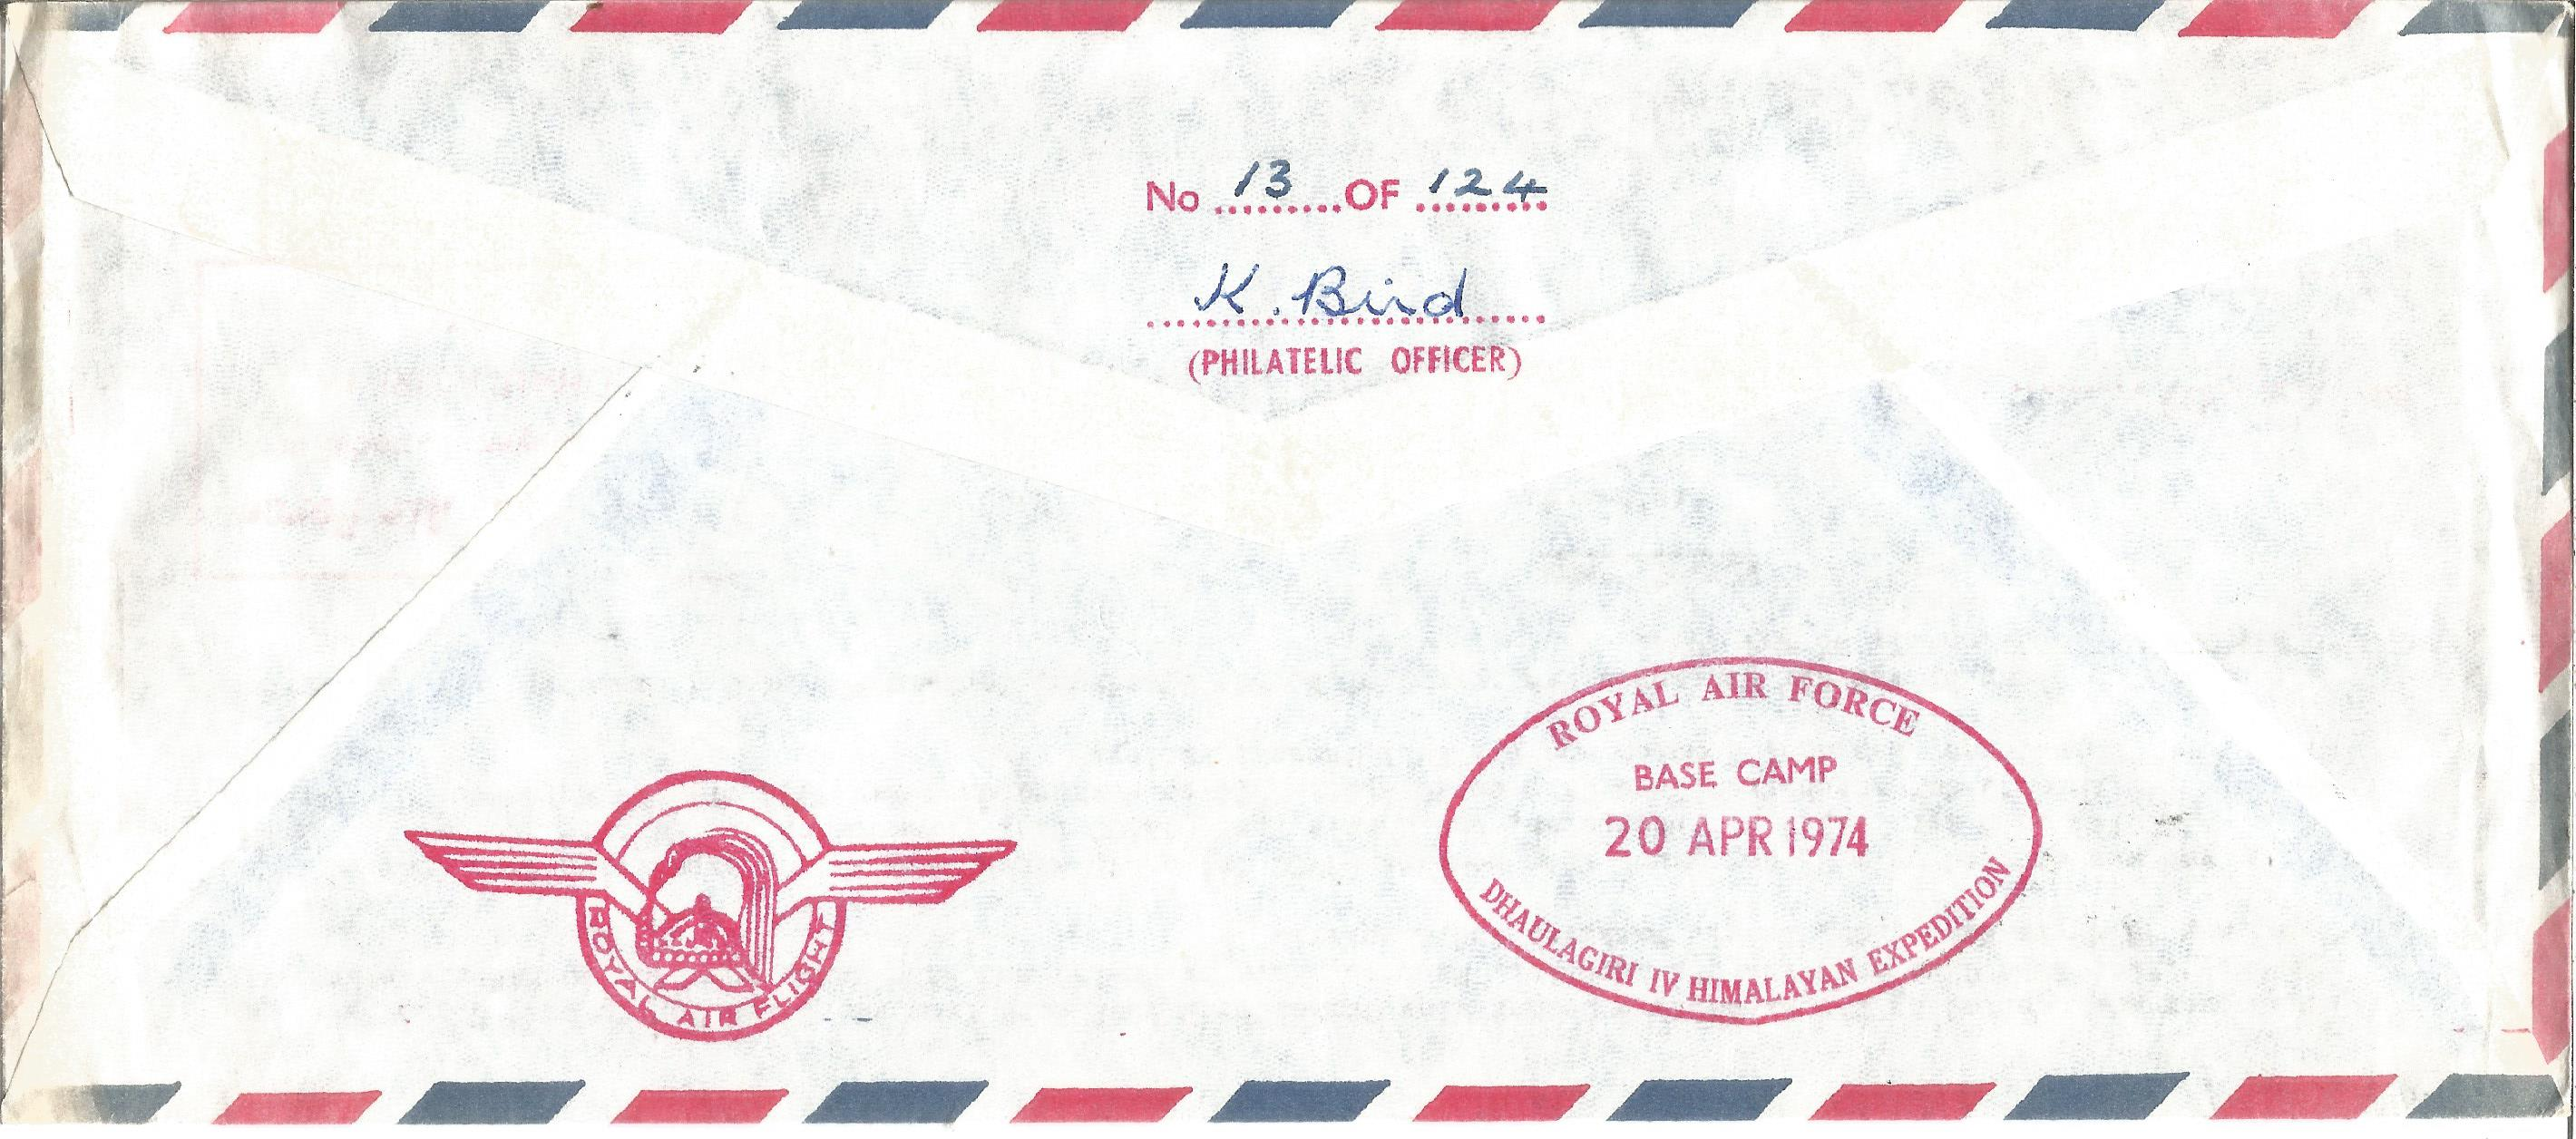 Wing Commander D le R Bird and Captain P B. Shar signed Air Mail FDC No. 13 of 124. Flown in His - Image 2 of 2